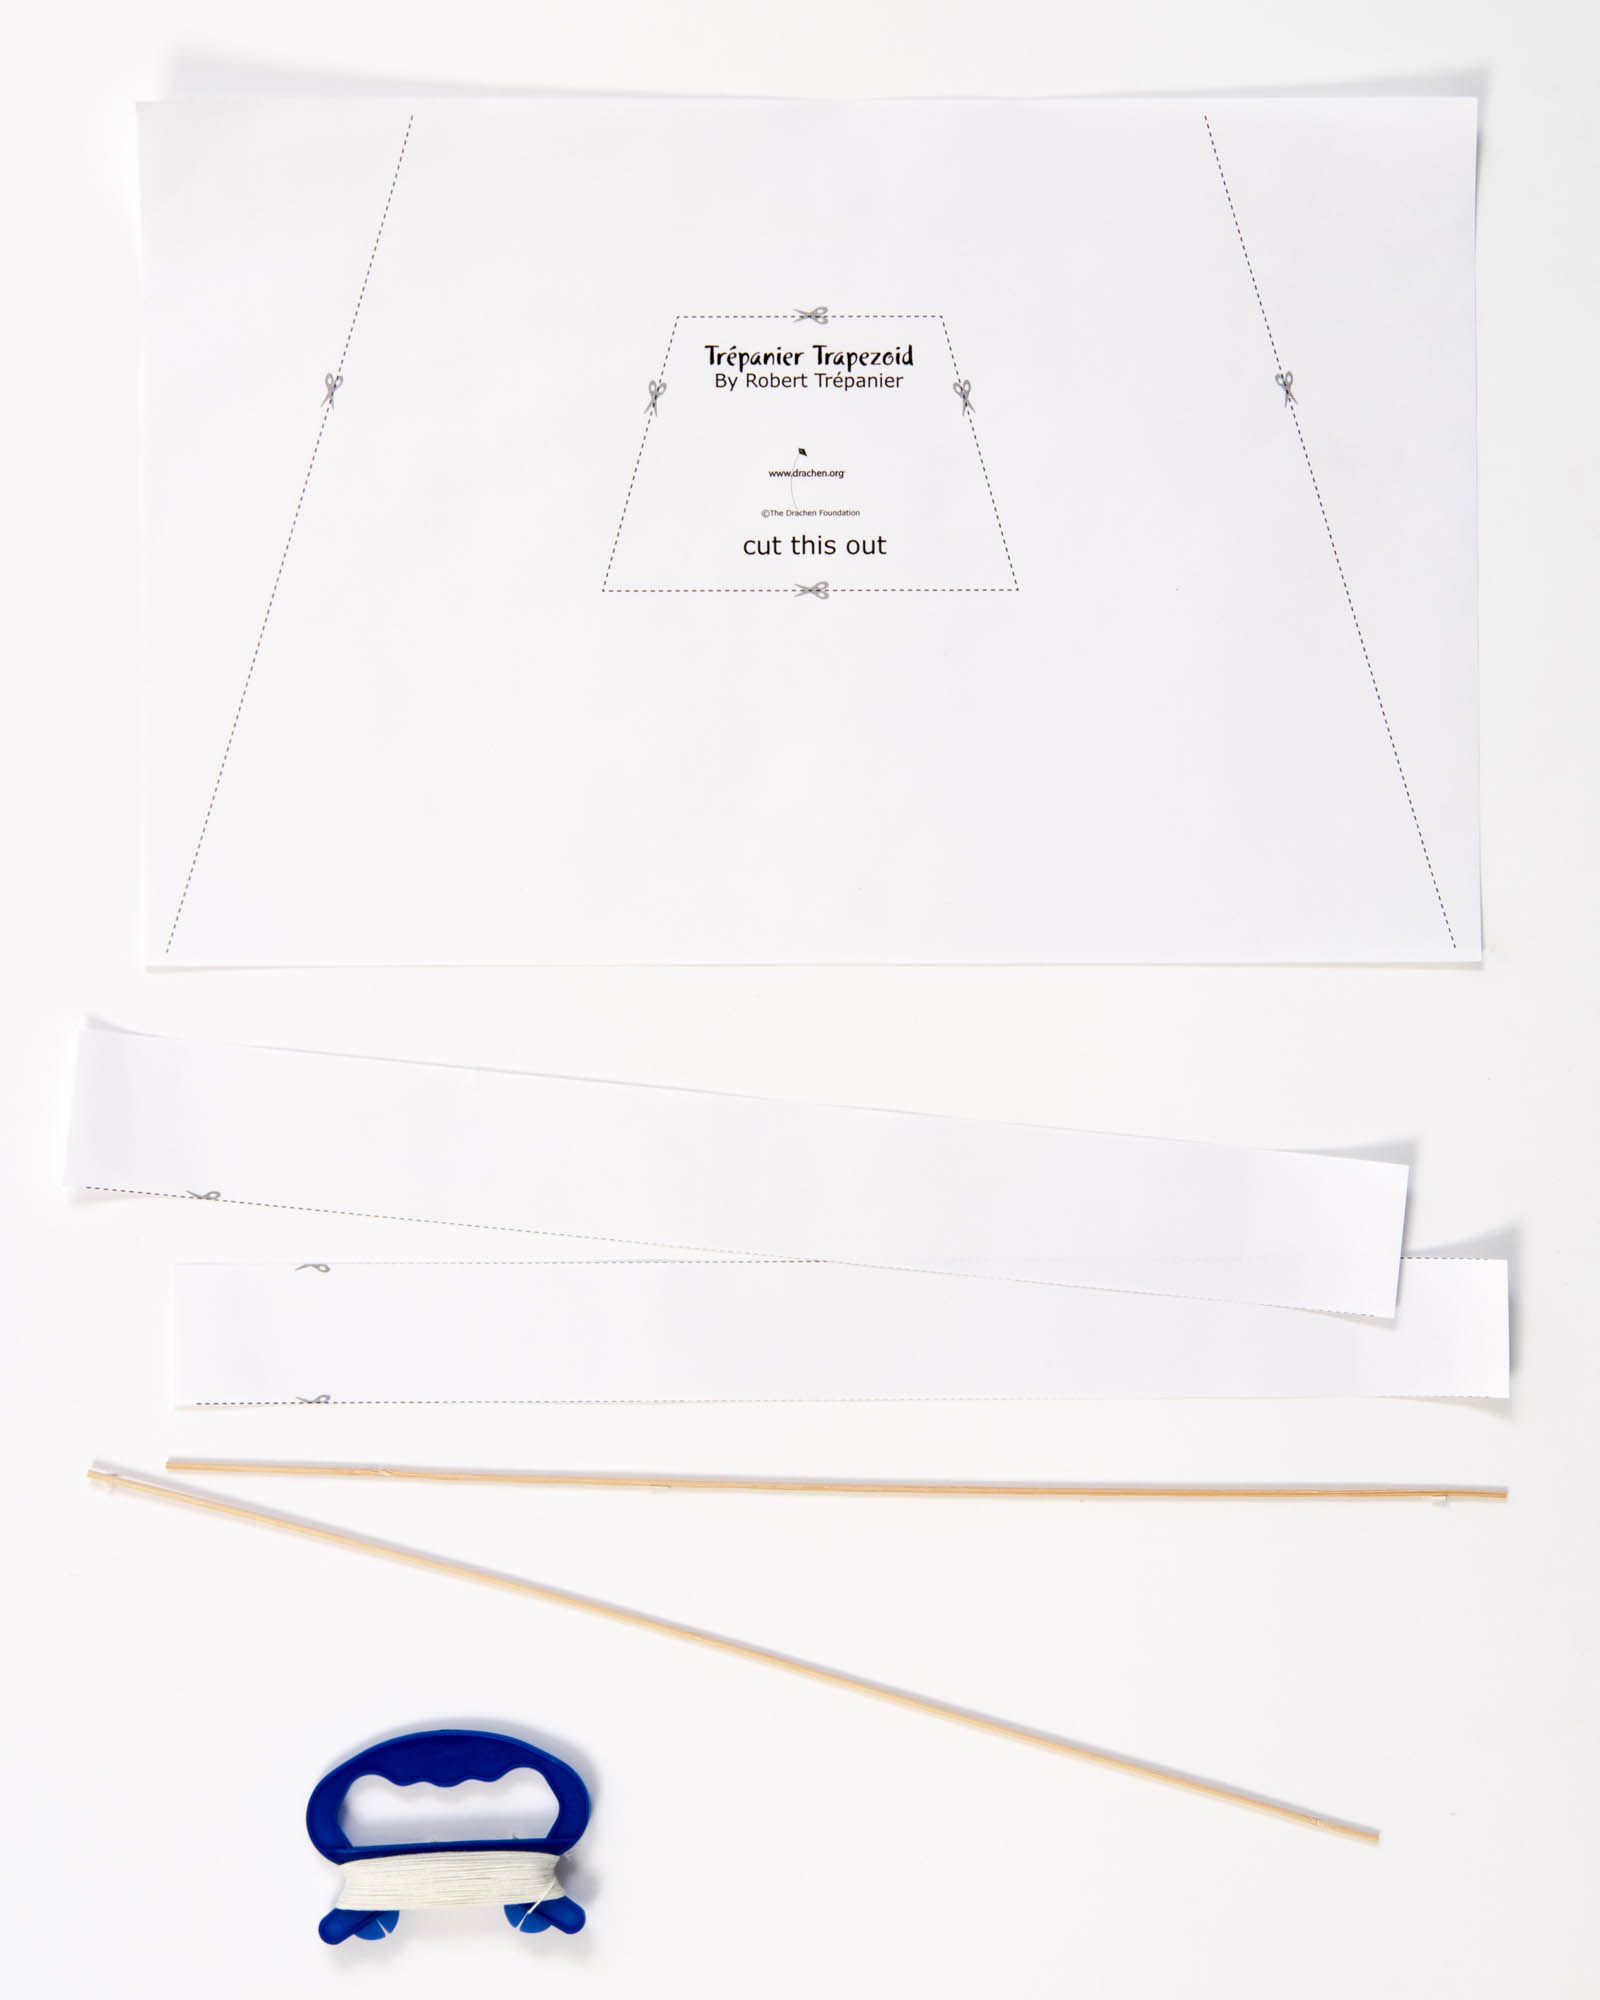 Kite Festivals Kit Trapezoid Shaped For Events Classrooms Diagram